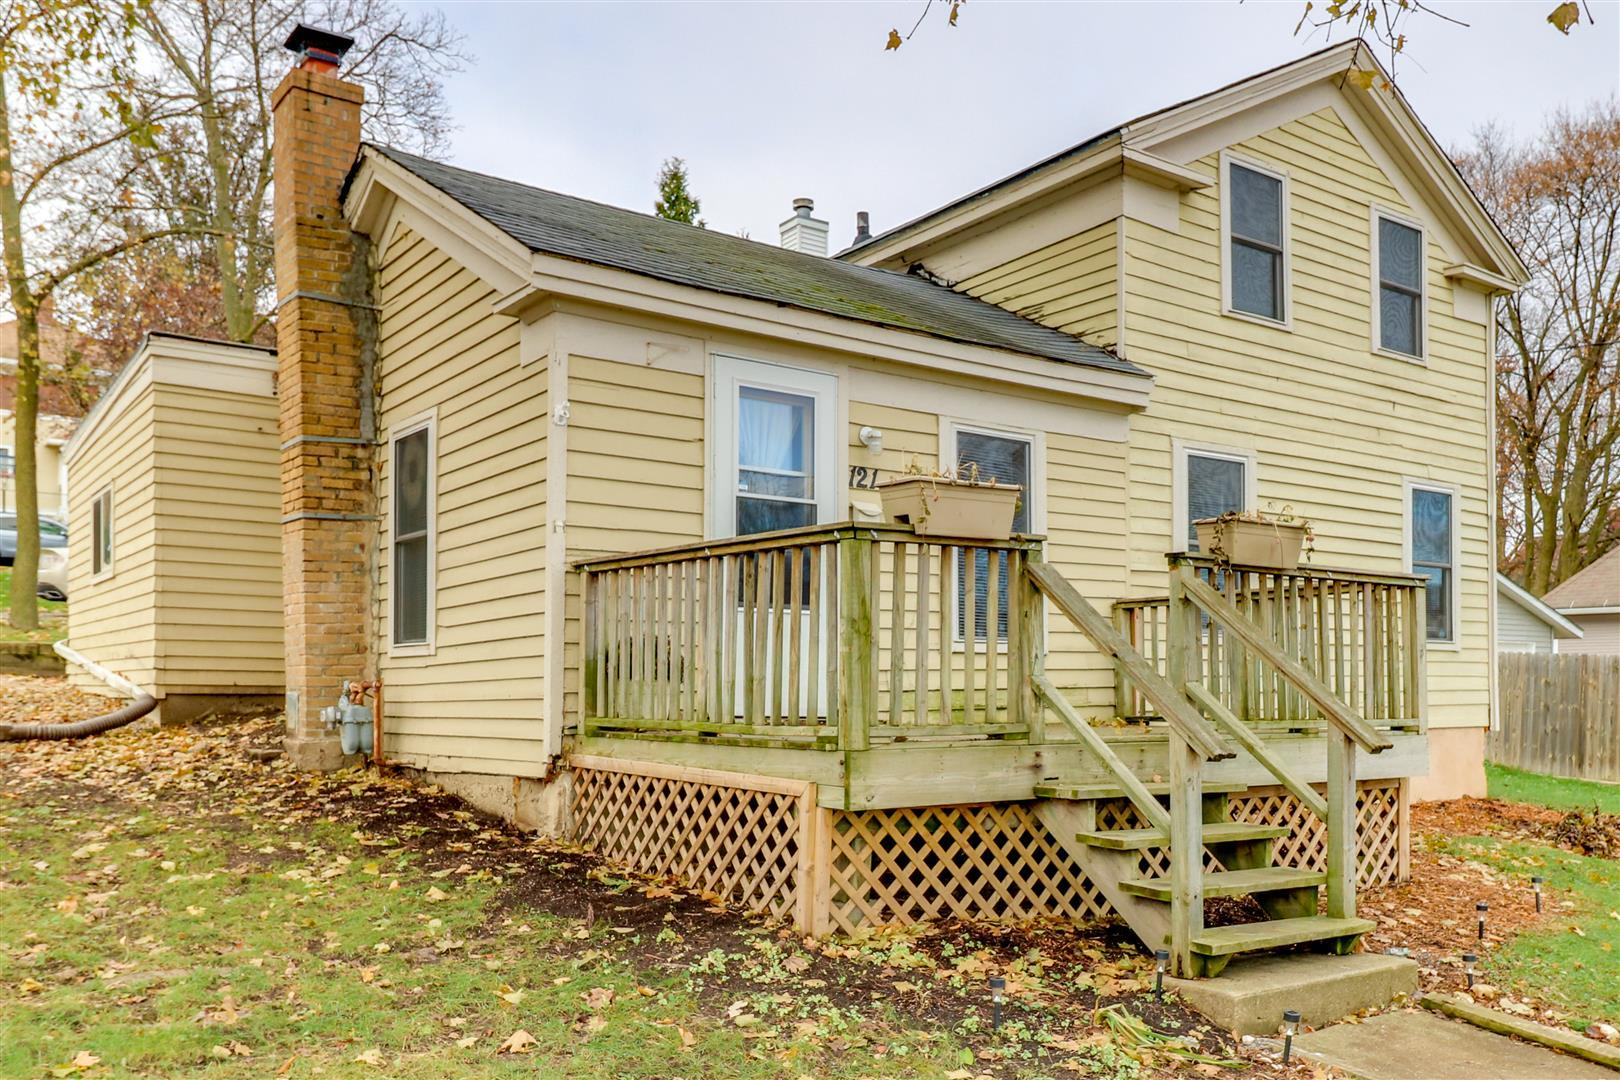 Photo for 121 S 4th Street, St. Charles, IL 60174 (MLS # 10580615)